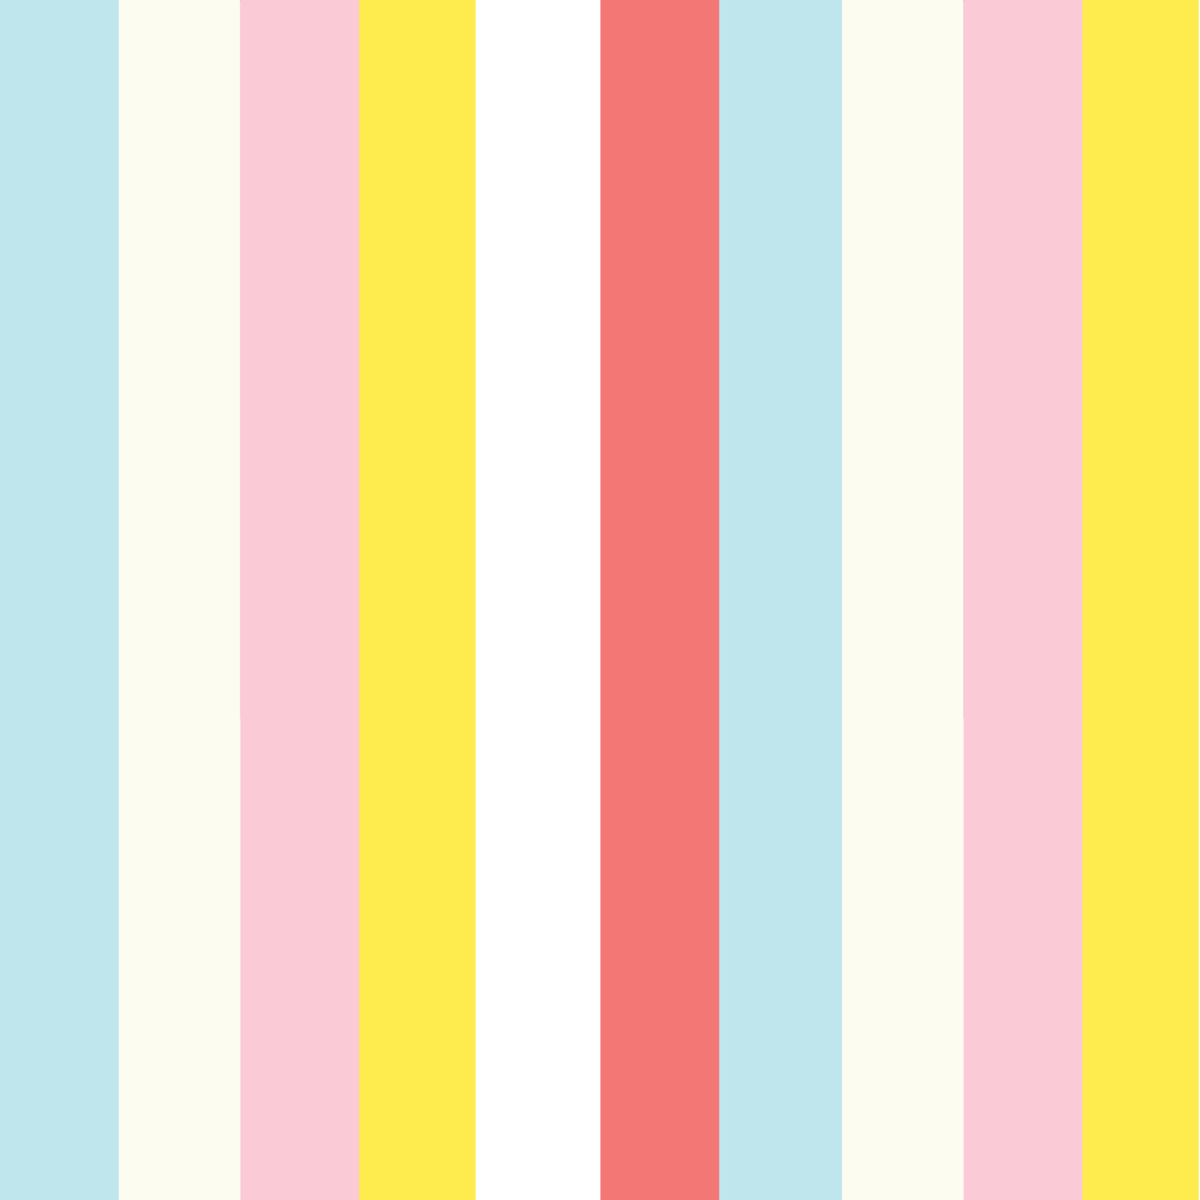 New_Candy Stripe Pattern